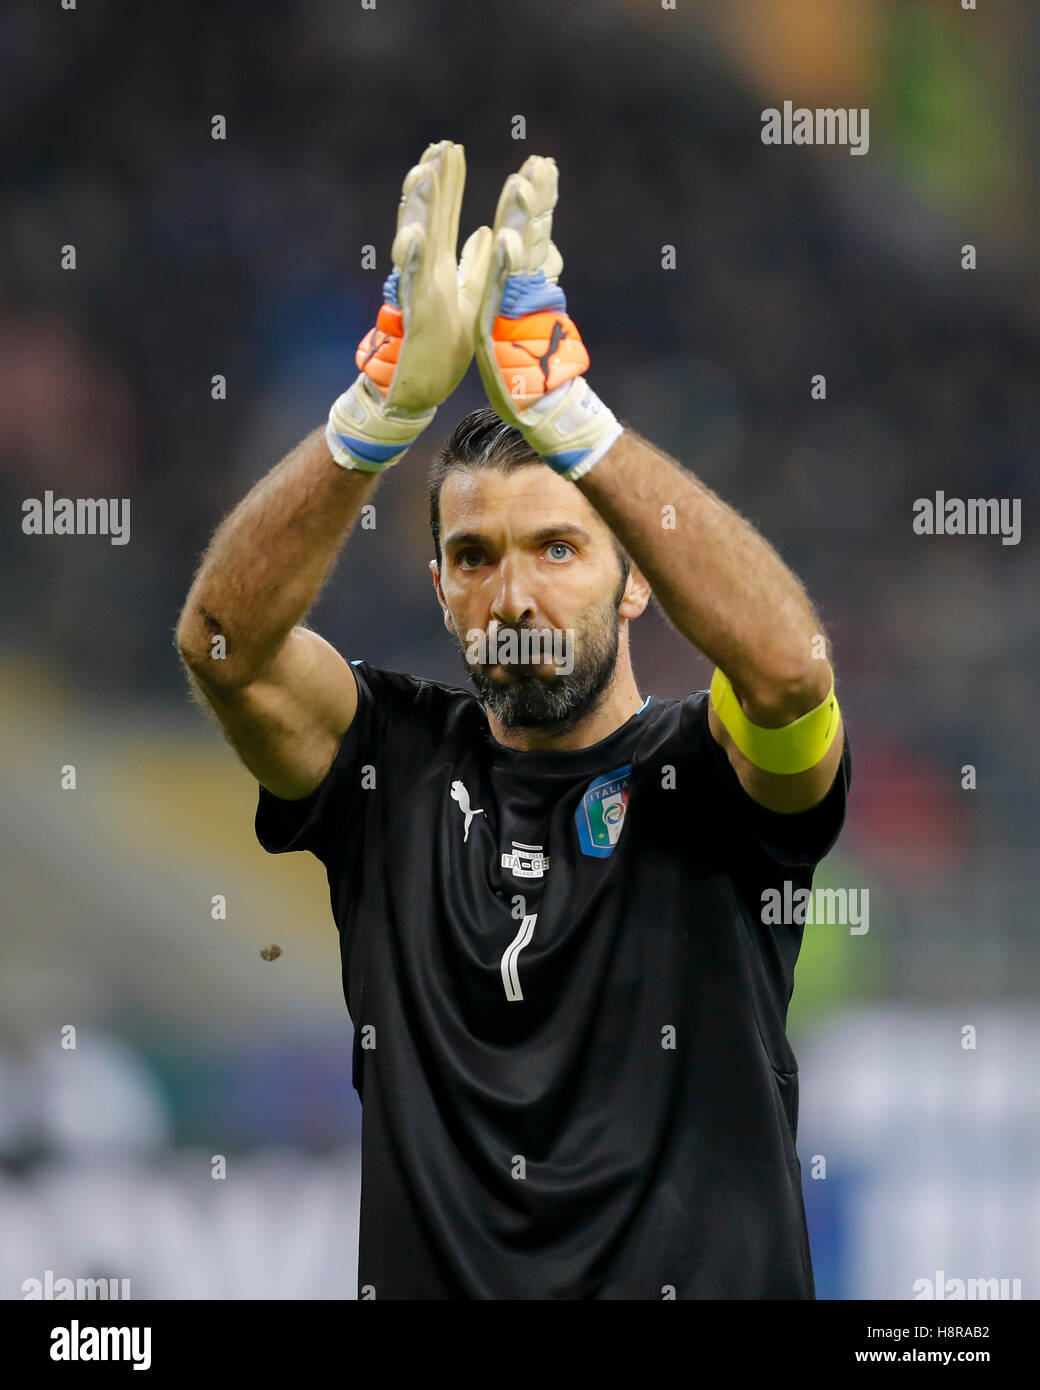 Milan, Italy. 15th November, 2016. Gianluigi BUFFON, ITA Torwart 1 says good bye, weaving to fans  ITALY  - GERMANY - Stock Image